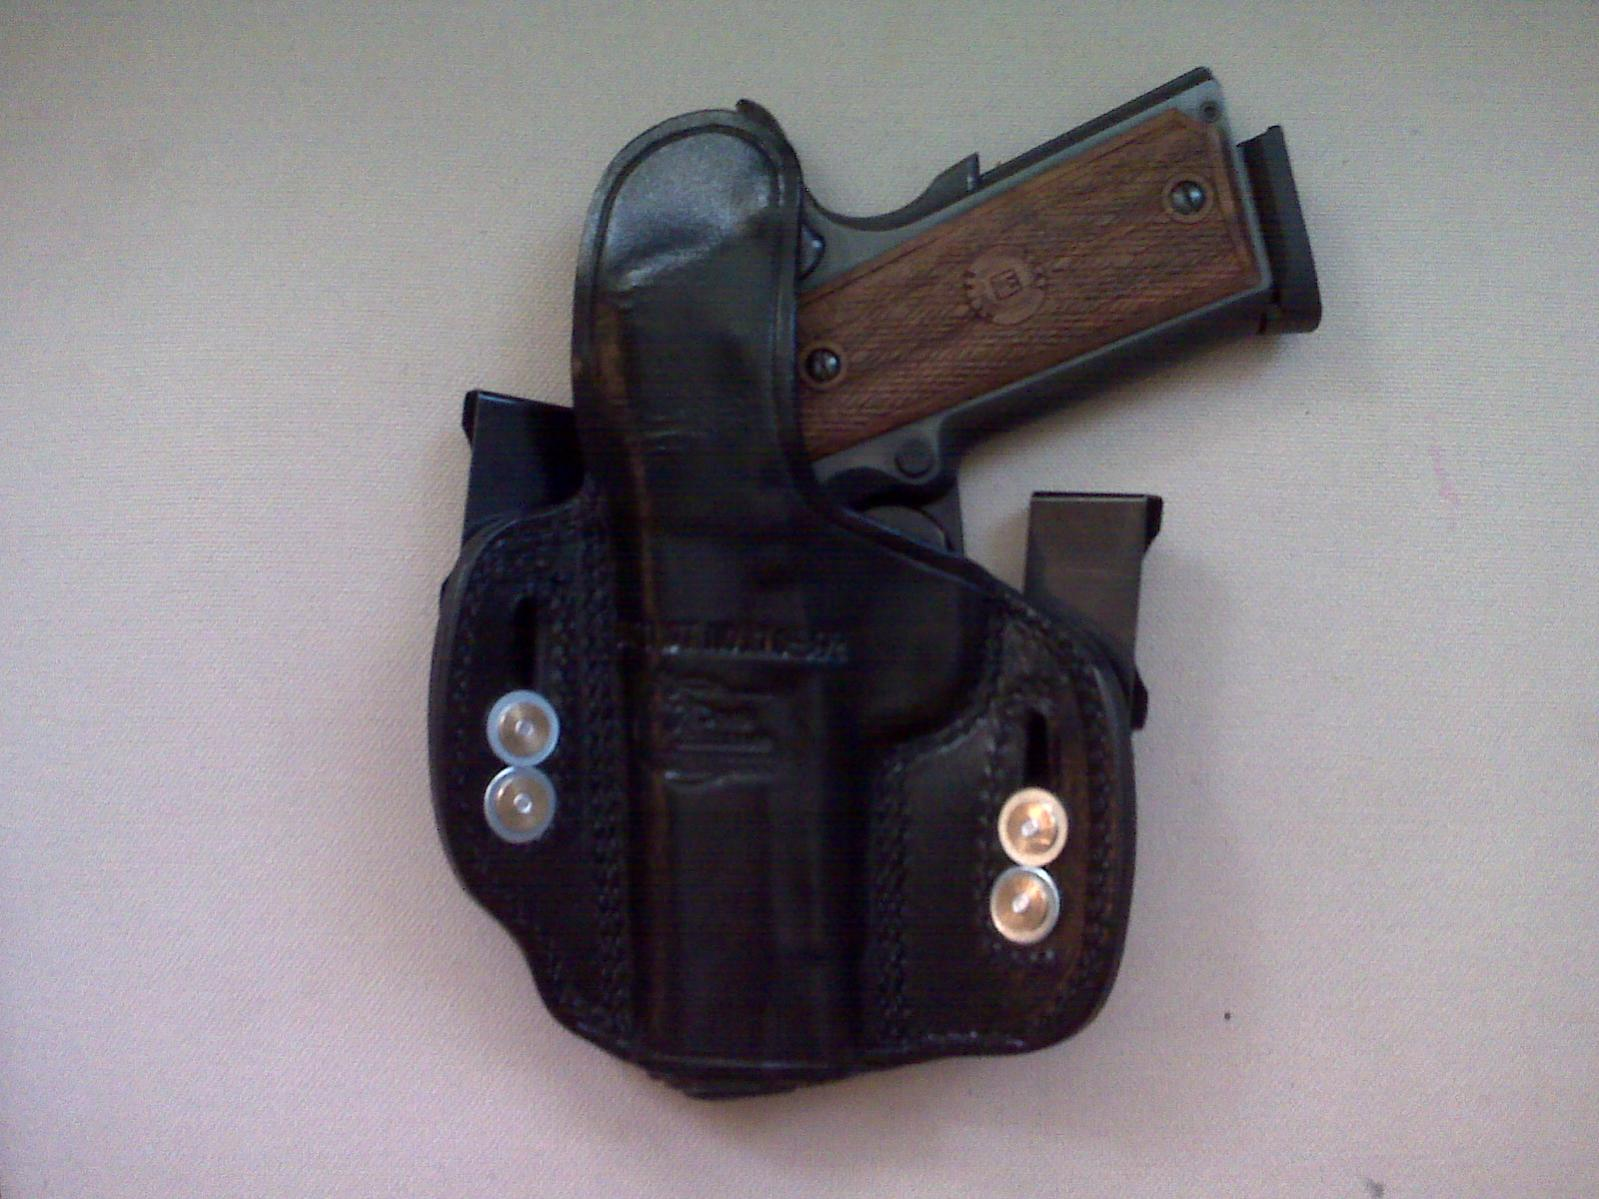 Don Hume 721 open top OWB holster + Galco King Tuck = THIS